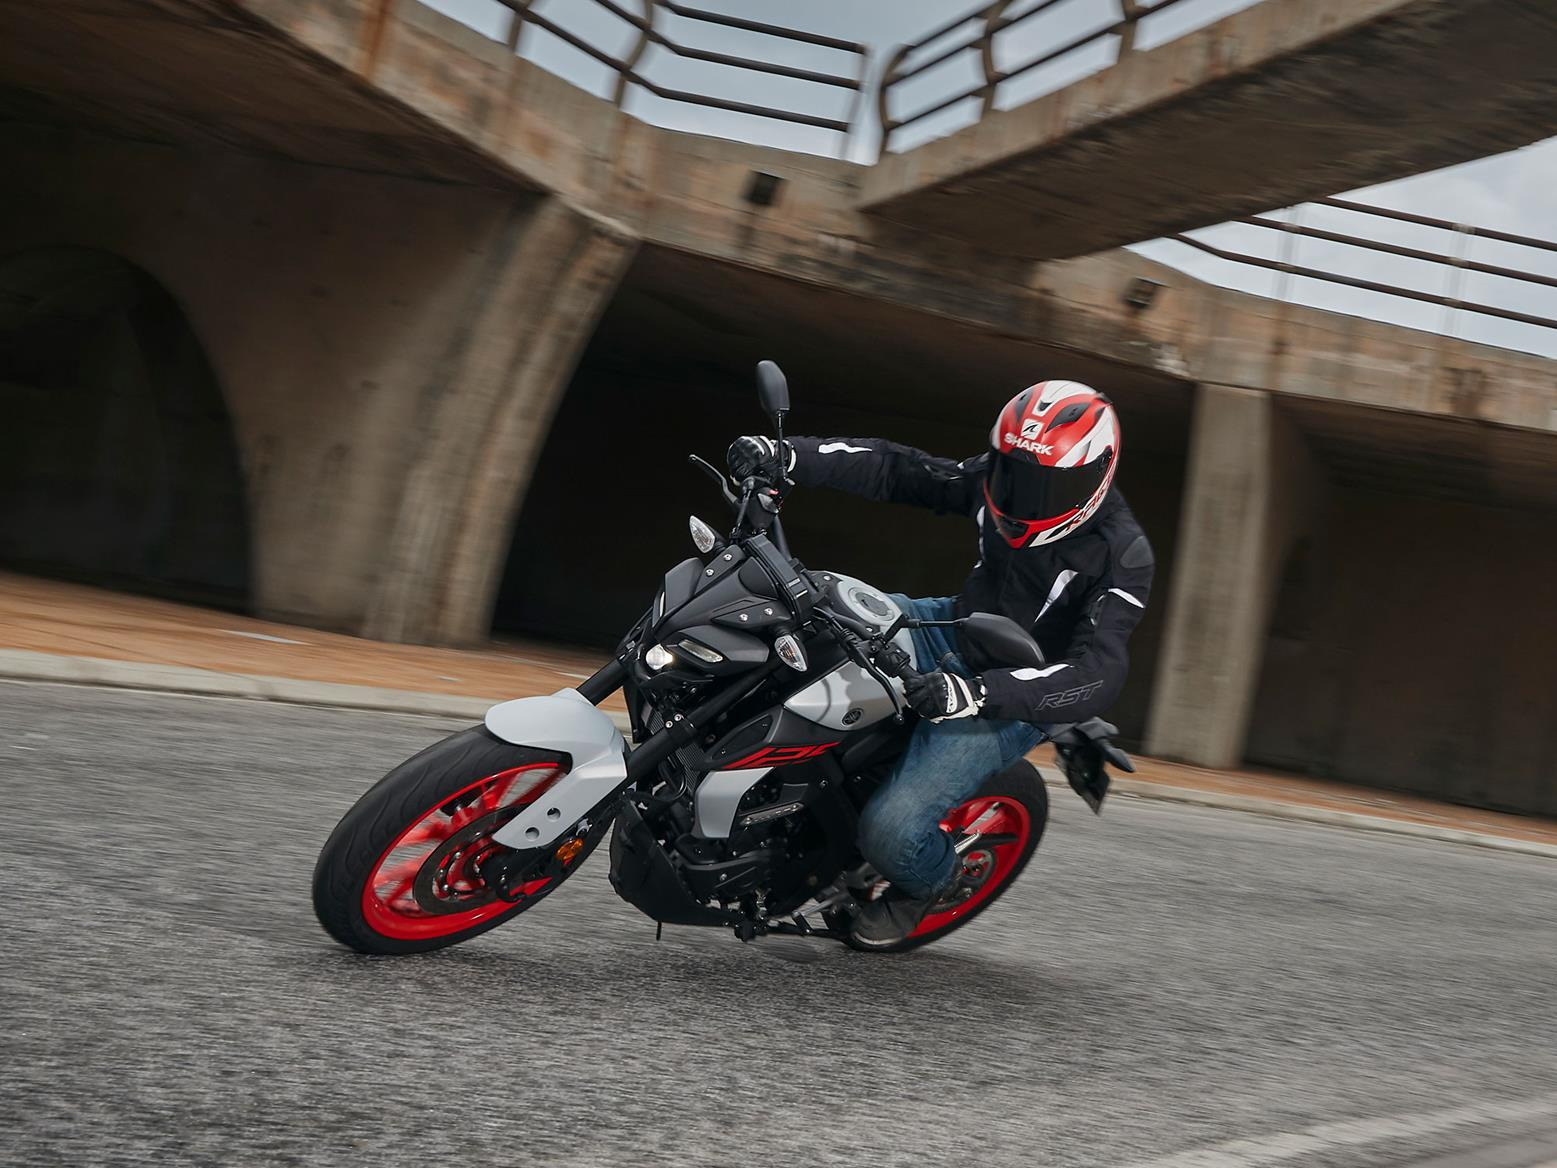 Dan Sutherland gets the best from the 2020 Yamaha MT-125